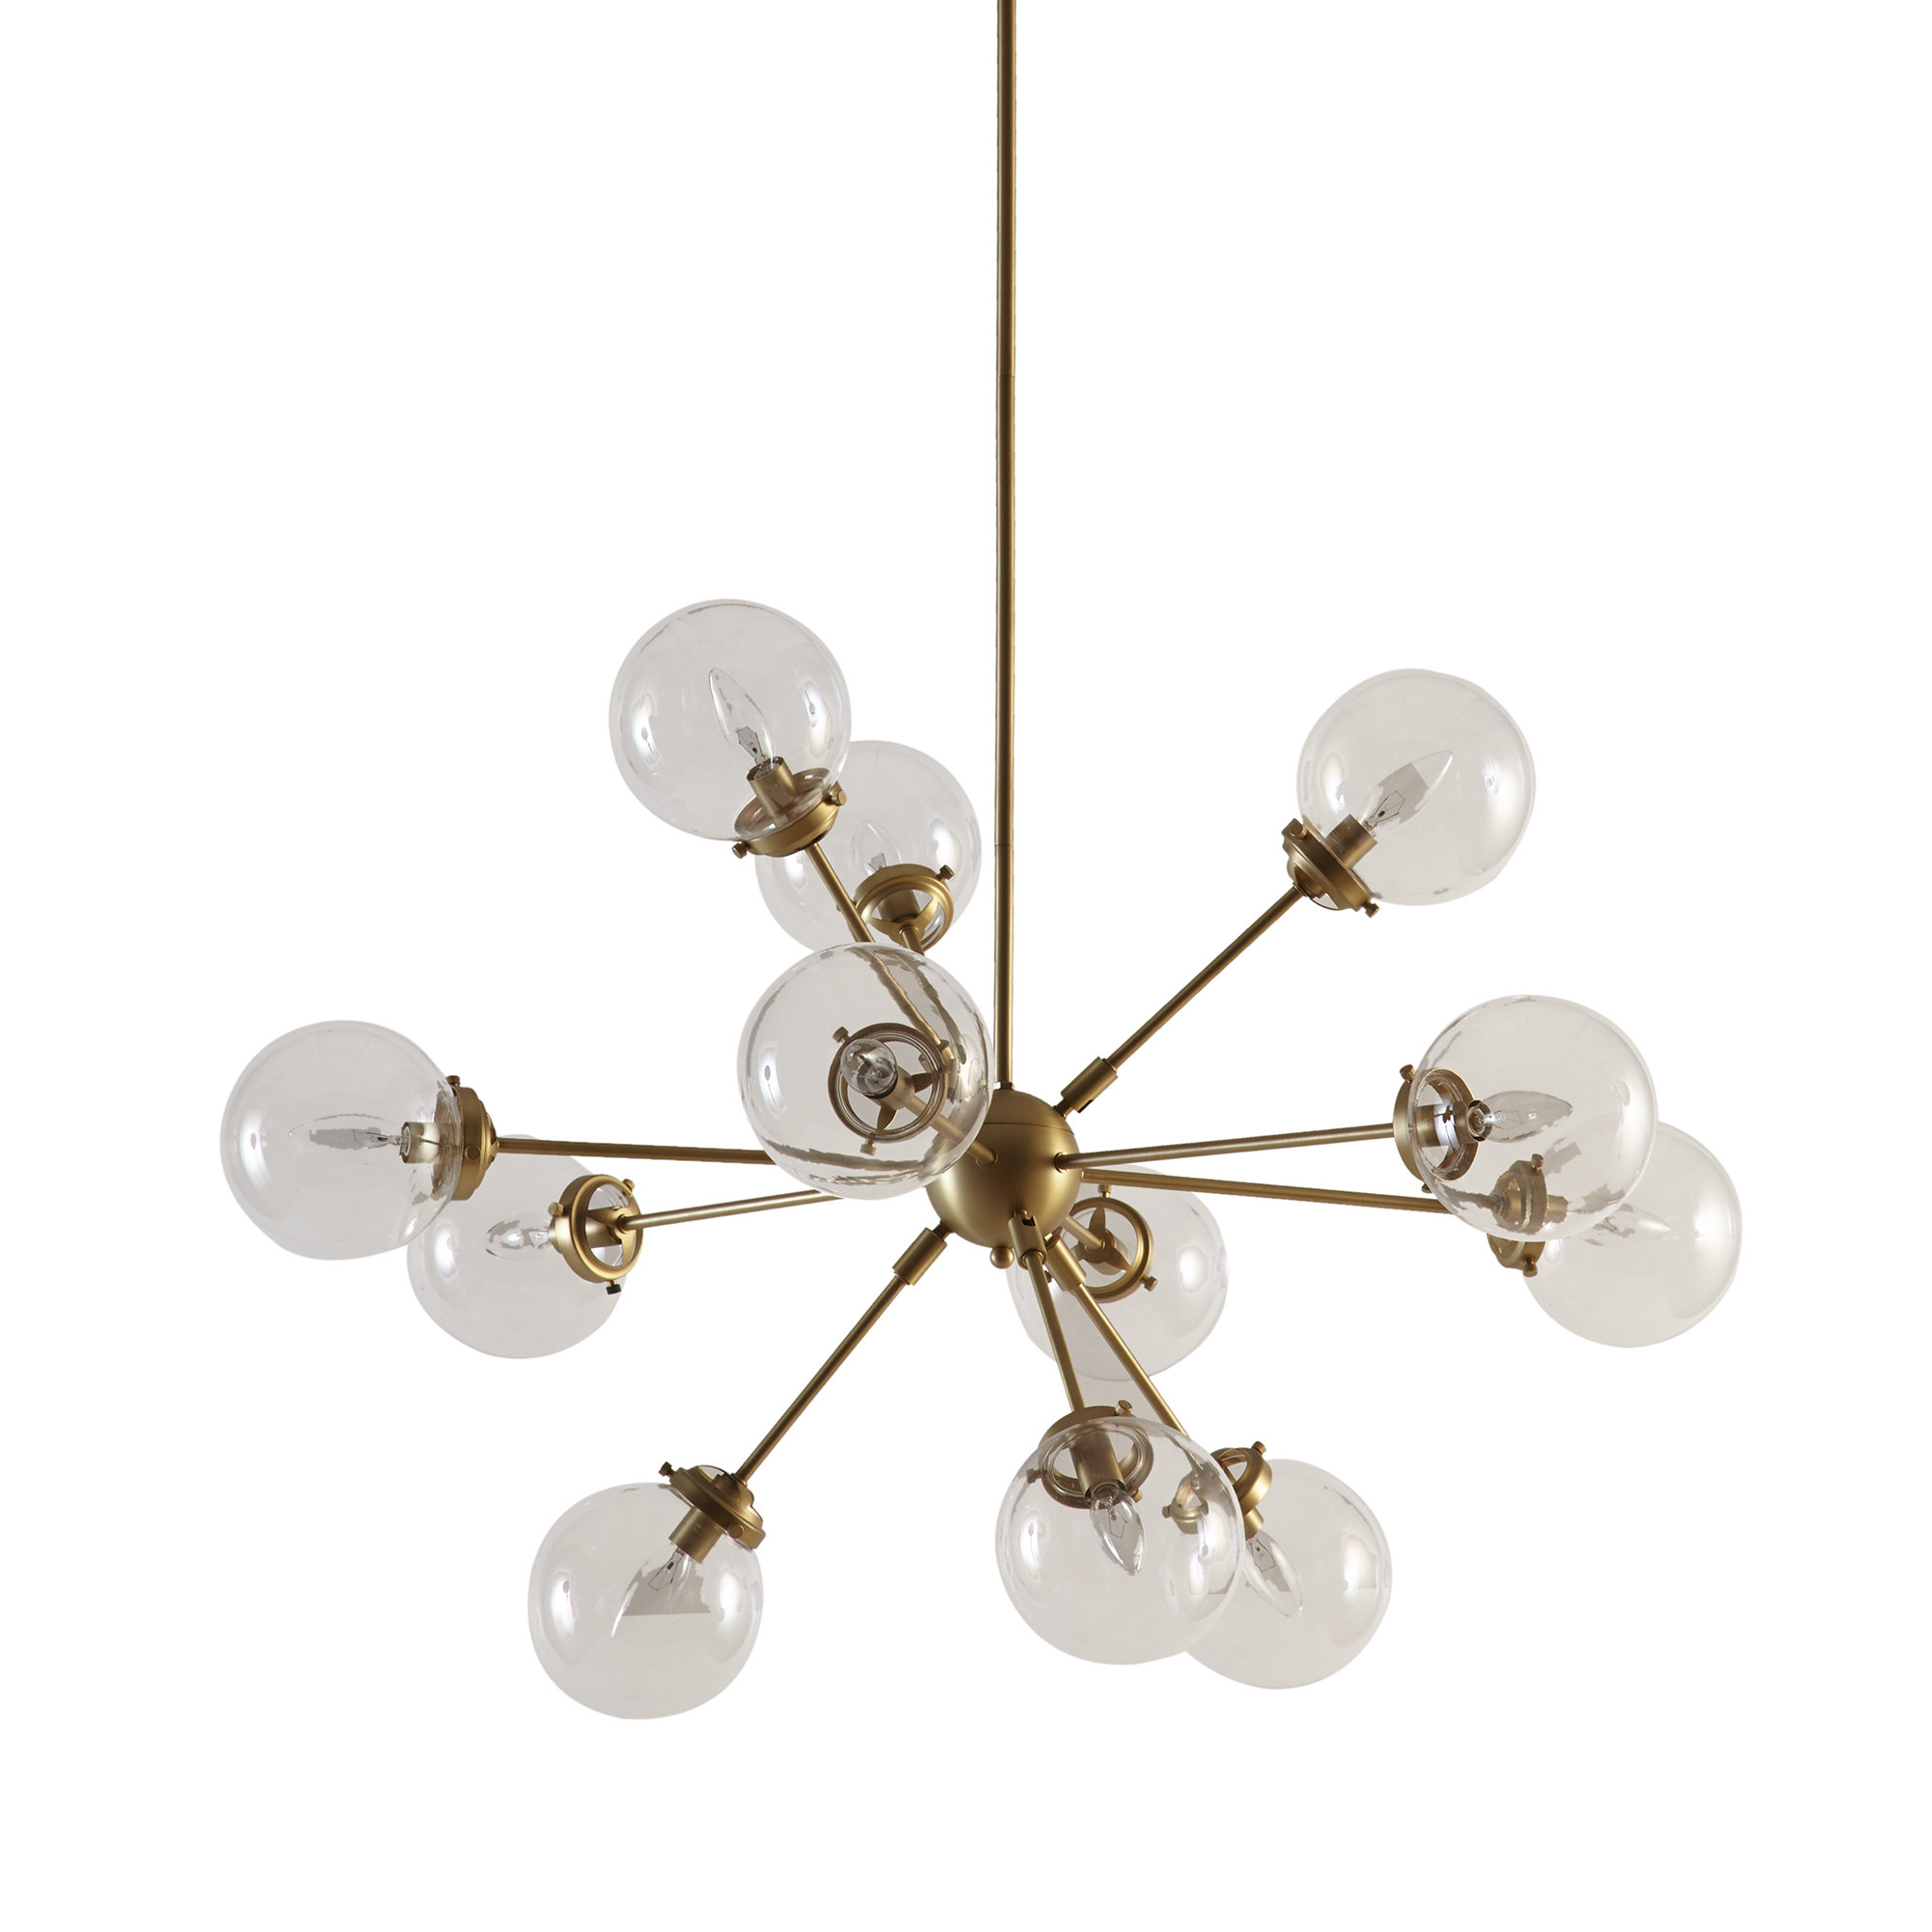 Widely Used Nelly 12 Light Sputnik Chandeliers Inside Asher 12 Light Sputnik Chandelier (View 20 of 20)